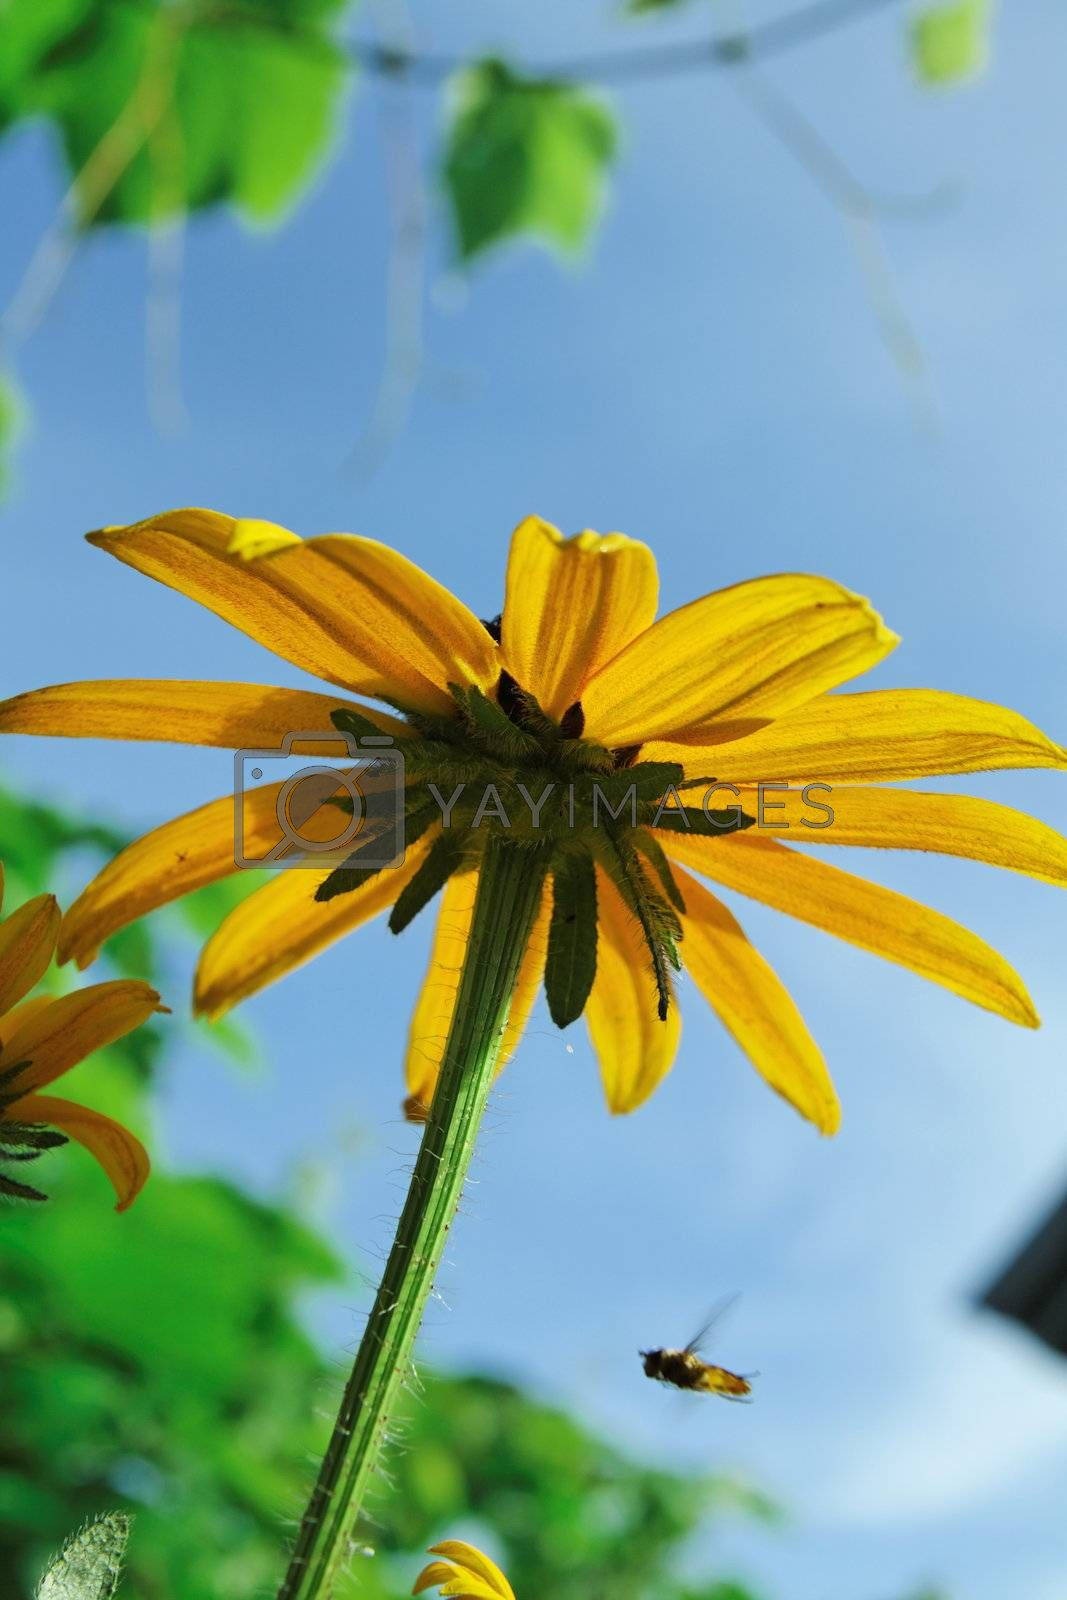 Bright shot of daisy flower from below